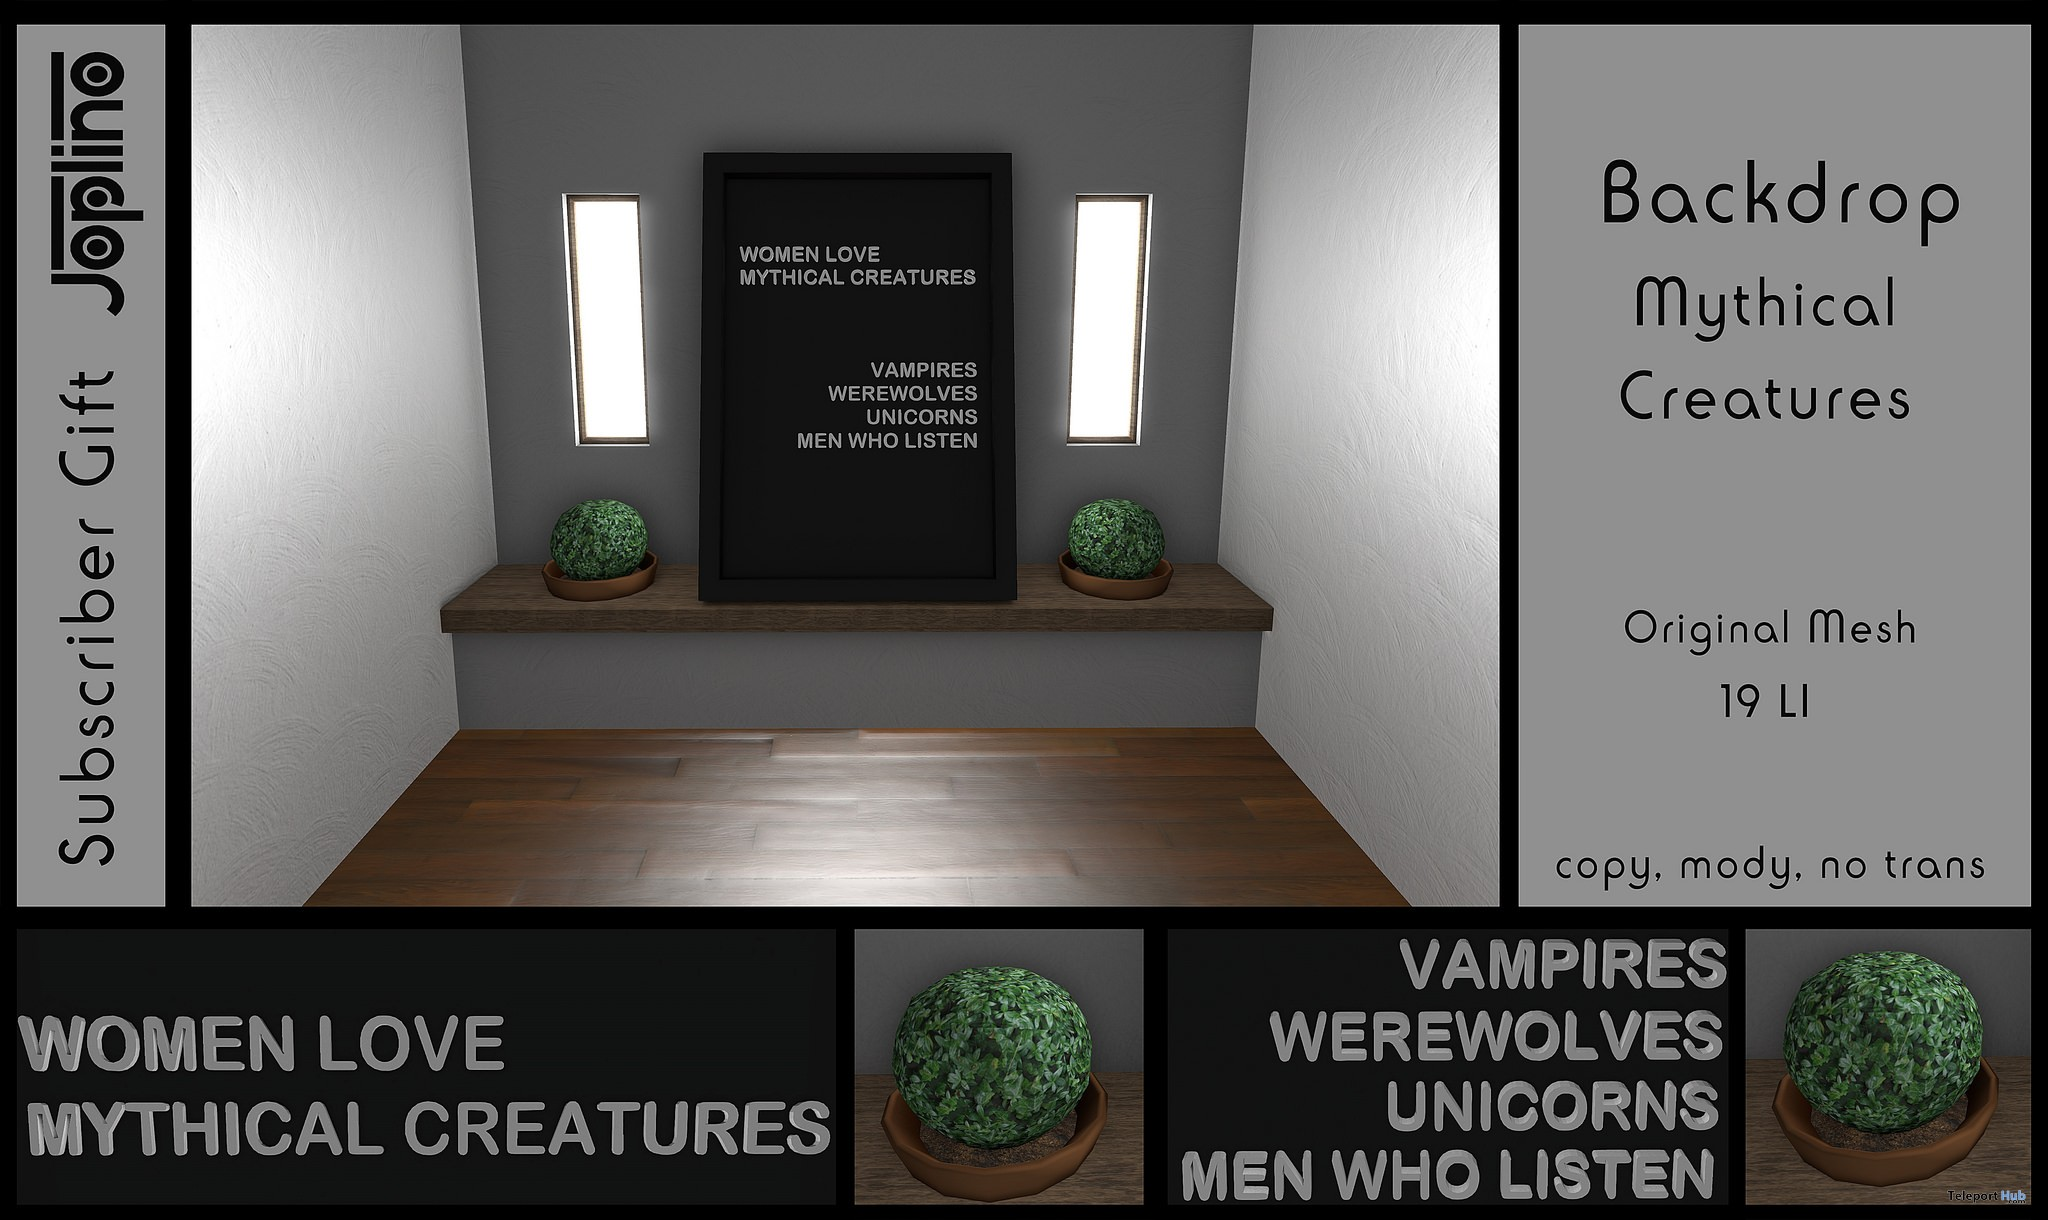 Backdrop Mythical Creatures November 2018 Subscriber Gift by Joplino - Teleport Hub - teleporthub.com